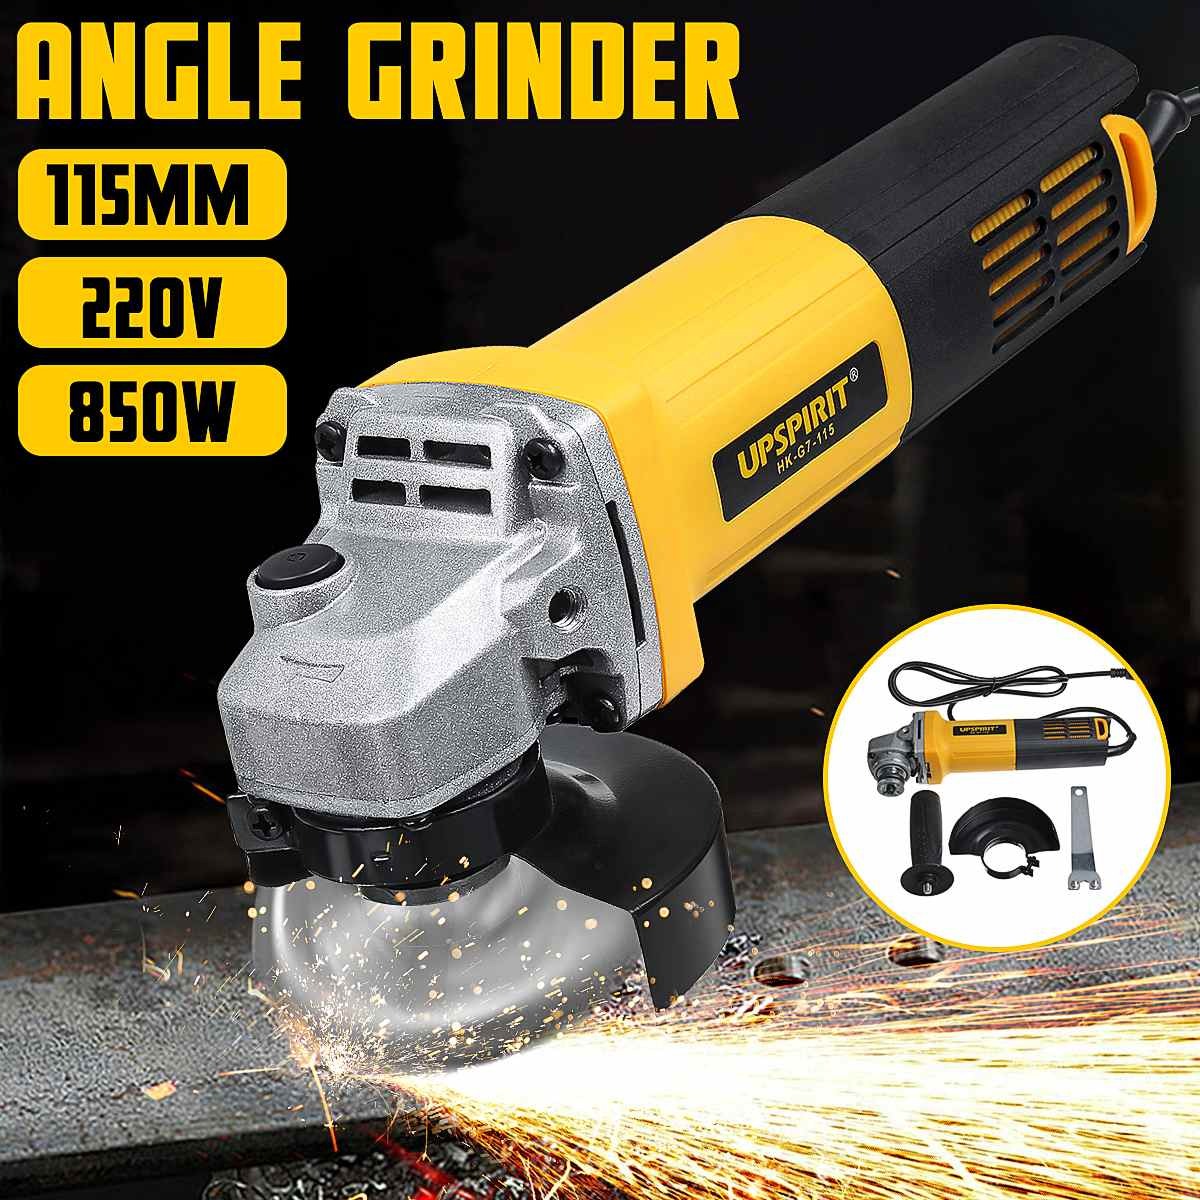 220V 850W Electric Angle Grinder 100mm Polishing Polisher Grinding Metal Stone Wood Cutting Woodworking Grinder Power Tool Kit